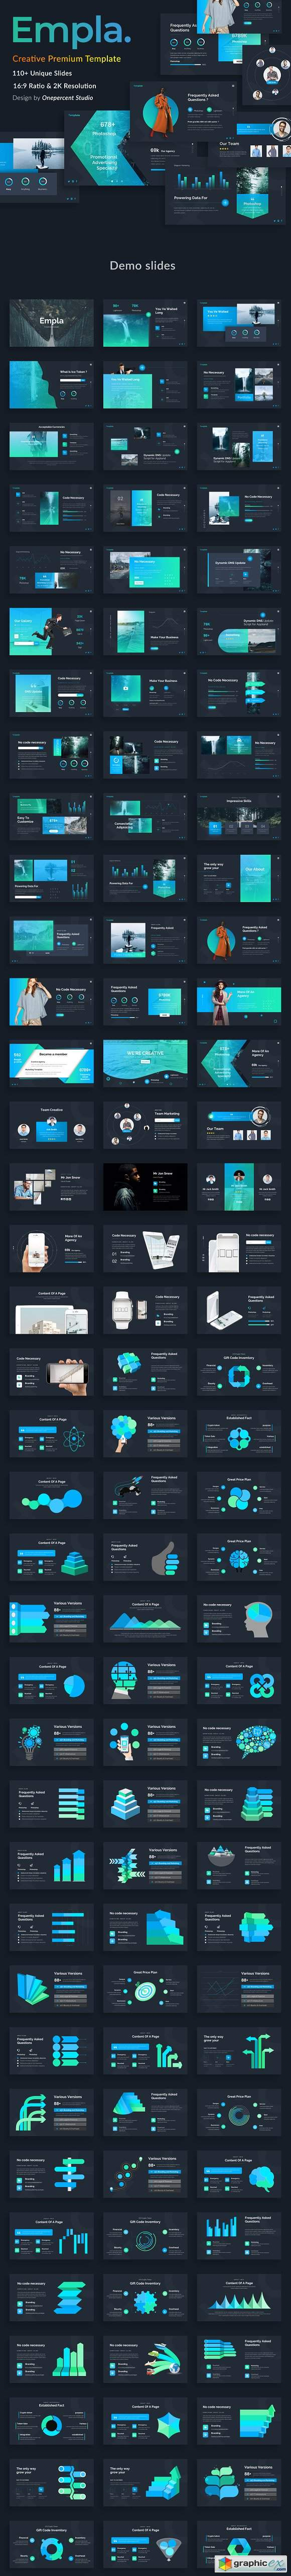 Empla Creative Powerpoint Template